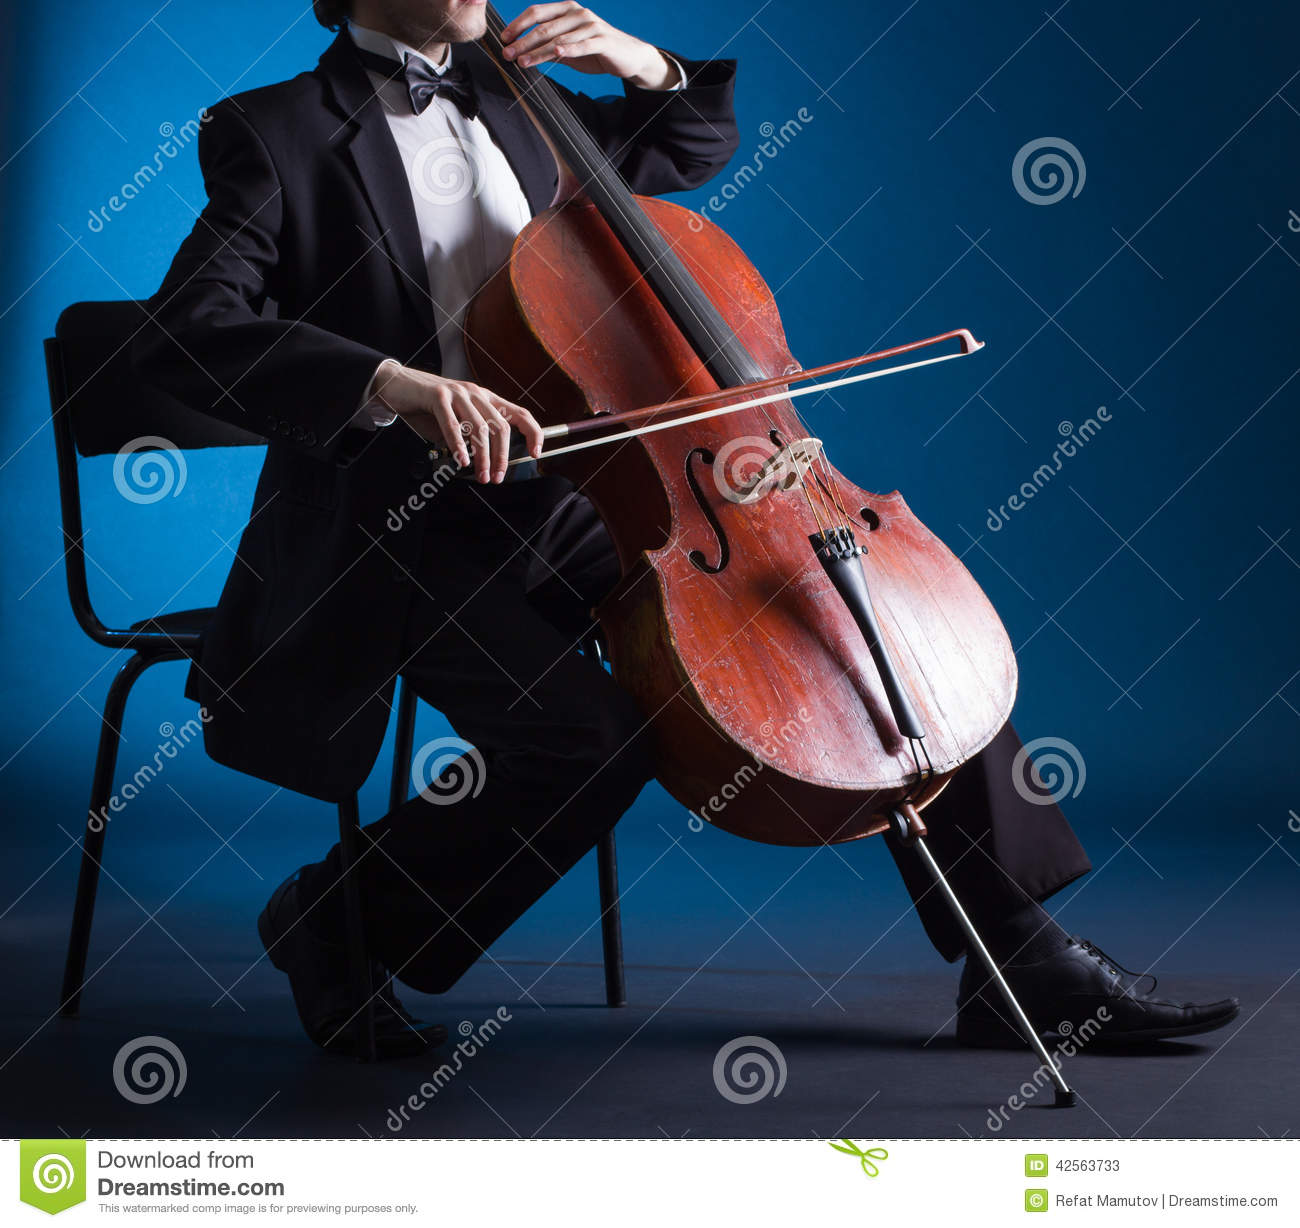 Cellist playing on cello